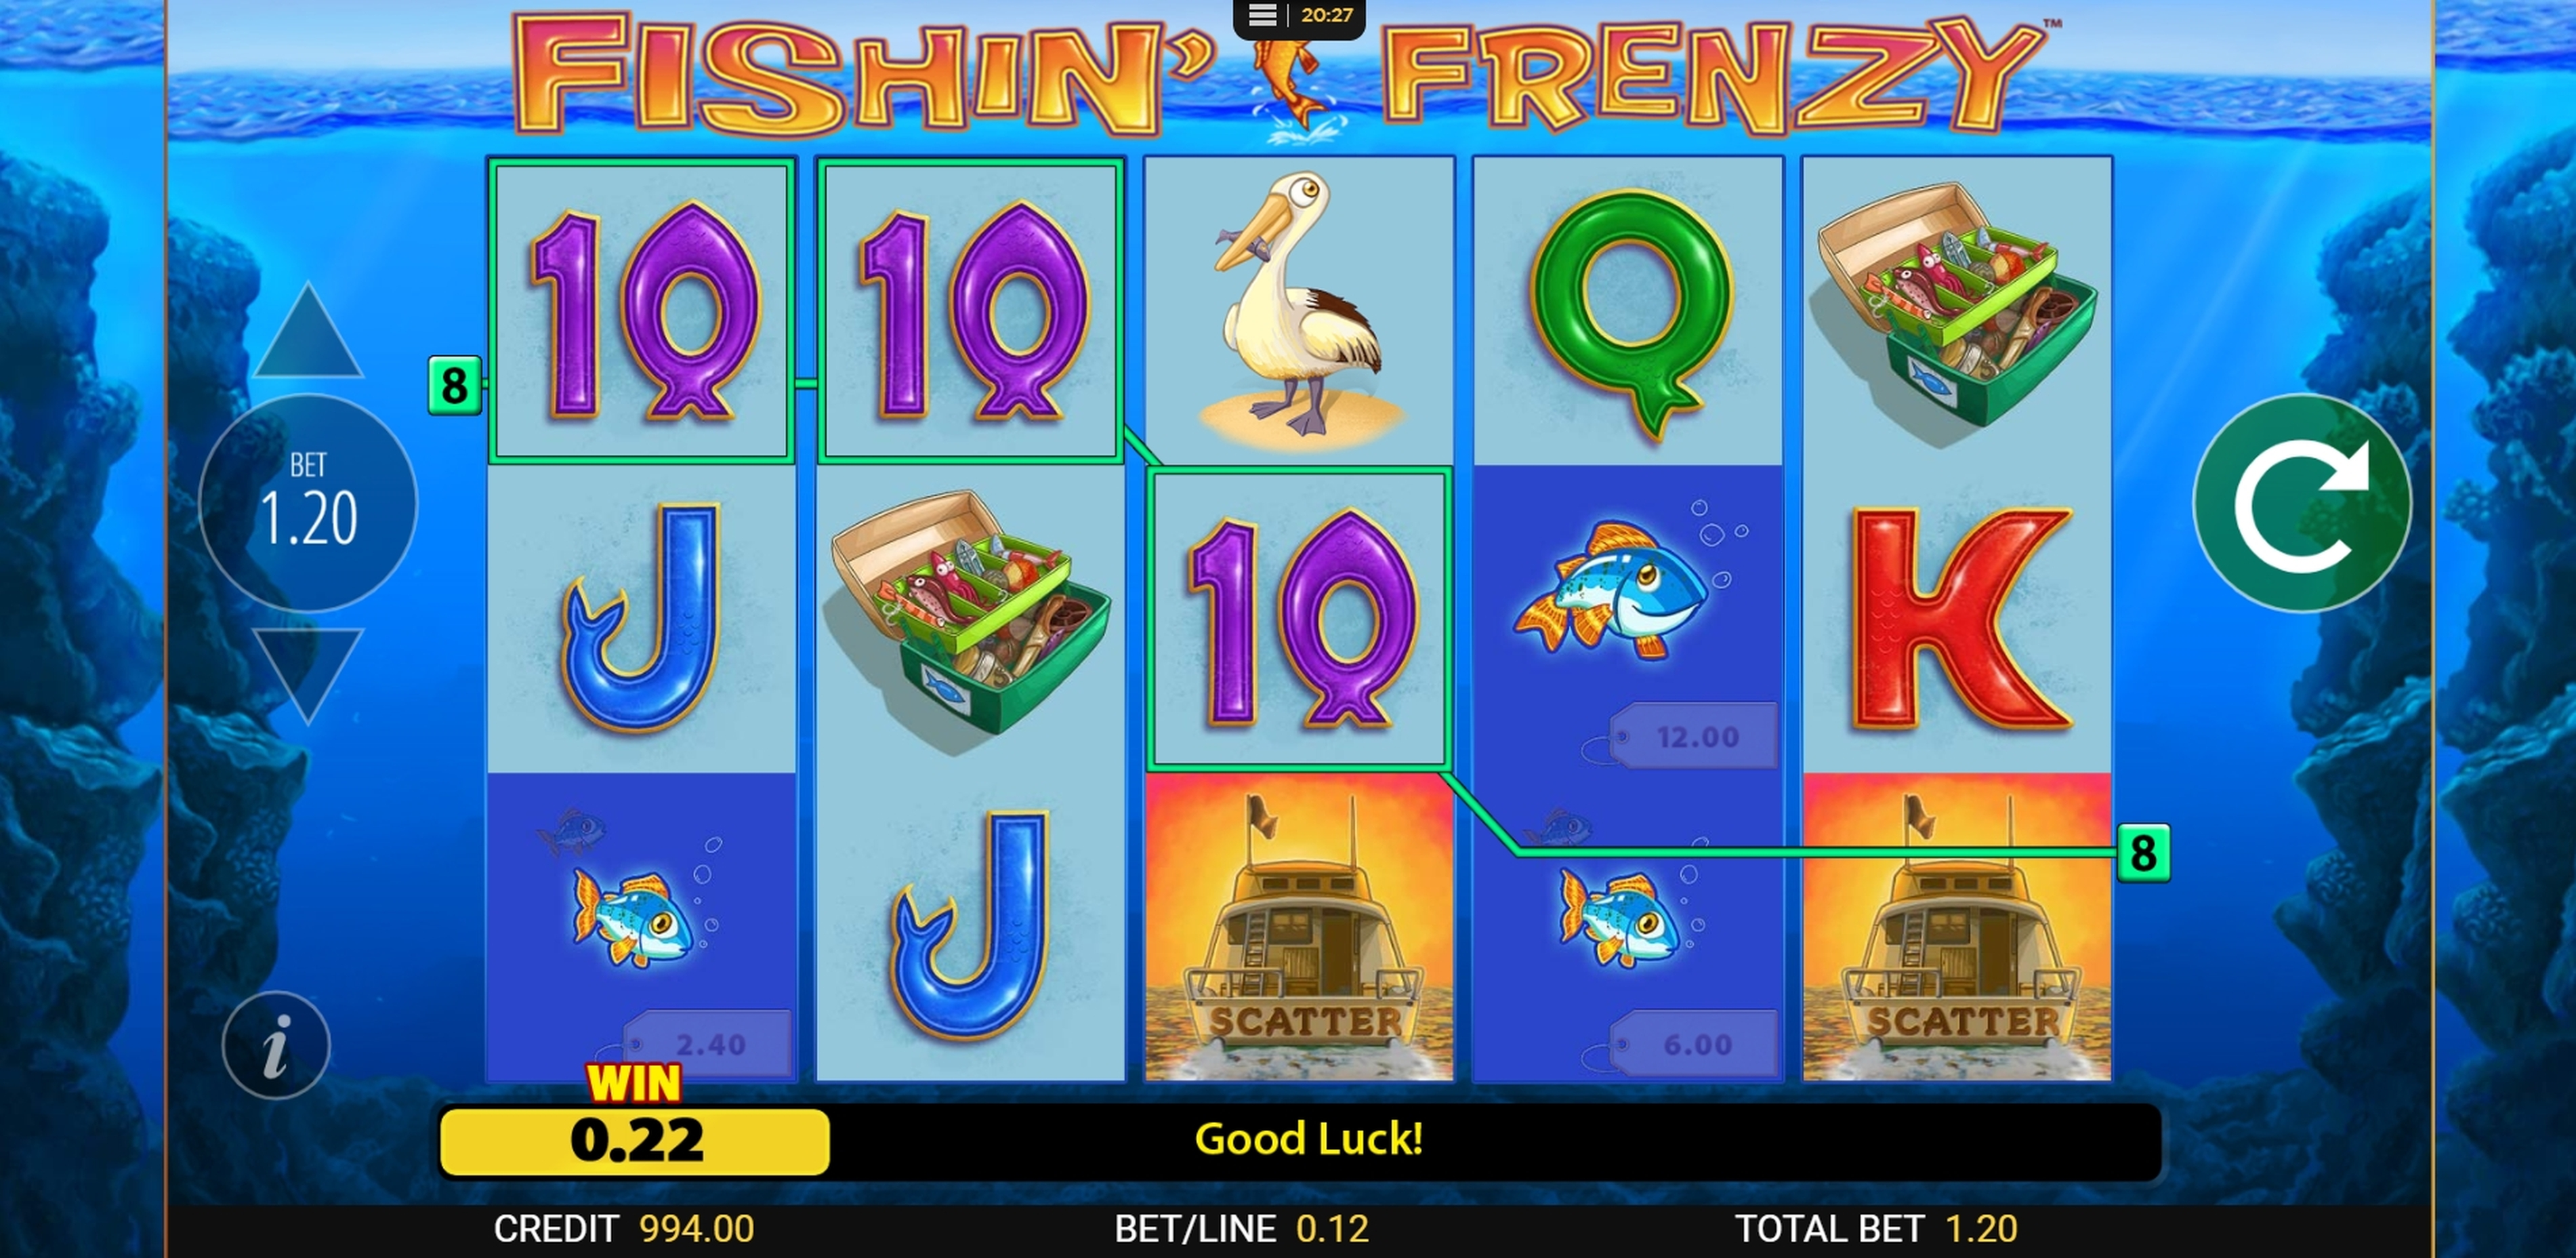 Win Money in Fishin' Frenzy Free Slot Game by Reel Time Gaming